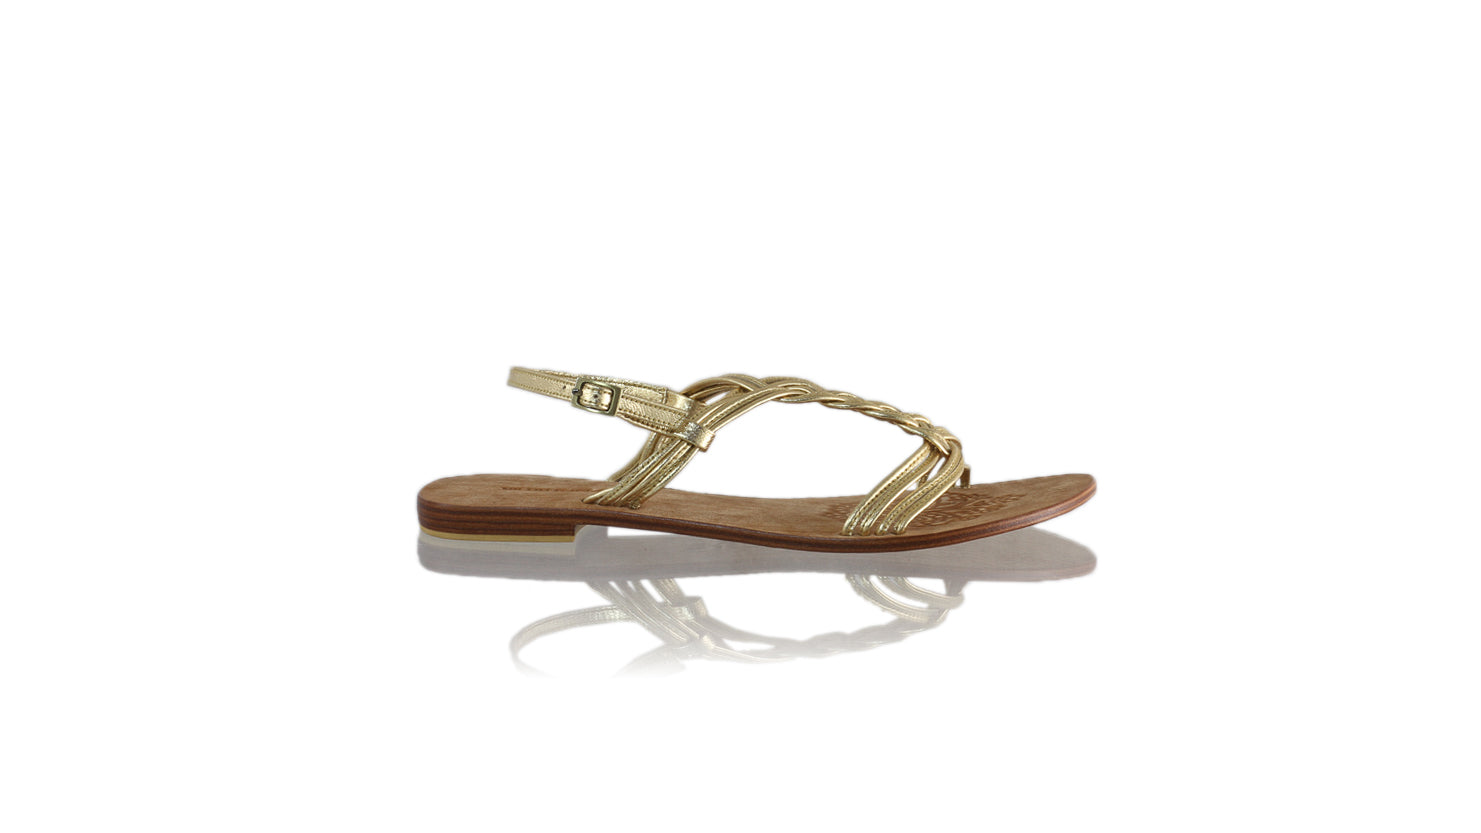 Leather-shoes-Nassera 20mm Flat - Gold-sandals flat-NILUH DJELANTIK-NILUH DJELANTIK